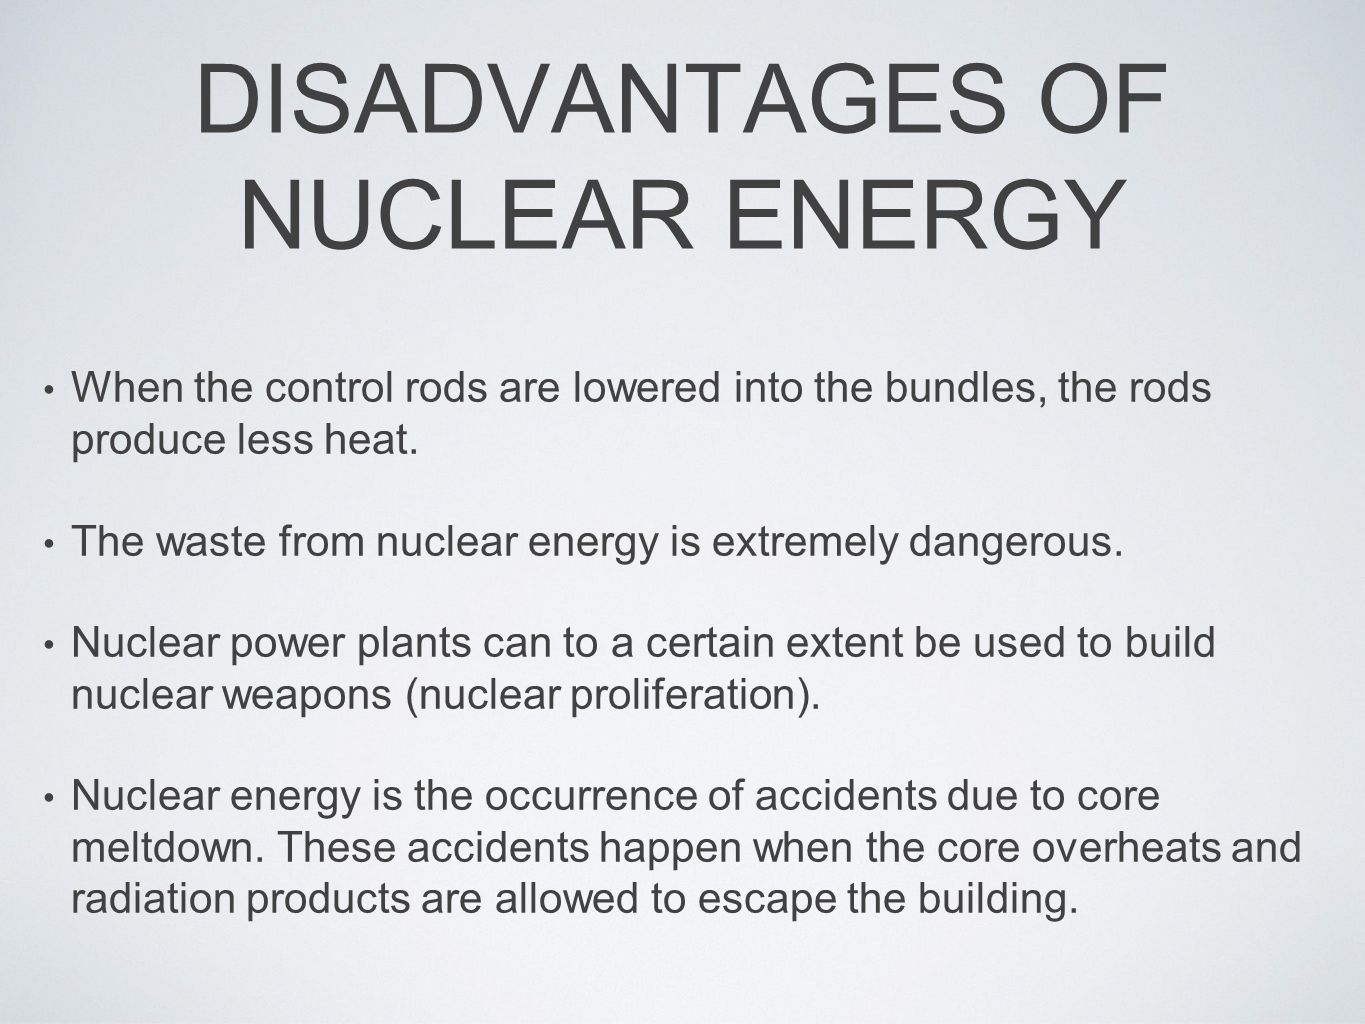 nuclear power presentation disadvantage Therefore the advantages of using nuclear power outweigh the disadvantages by far, which makes nuclear power a safe, secure and economical option for generating of electricity glossary meltdown: when a nuclear reactor core overheats causing the encasement to melt thus allowing radiation to escape.